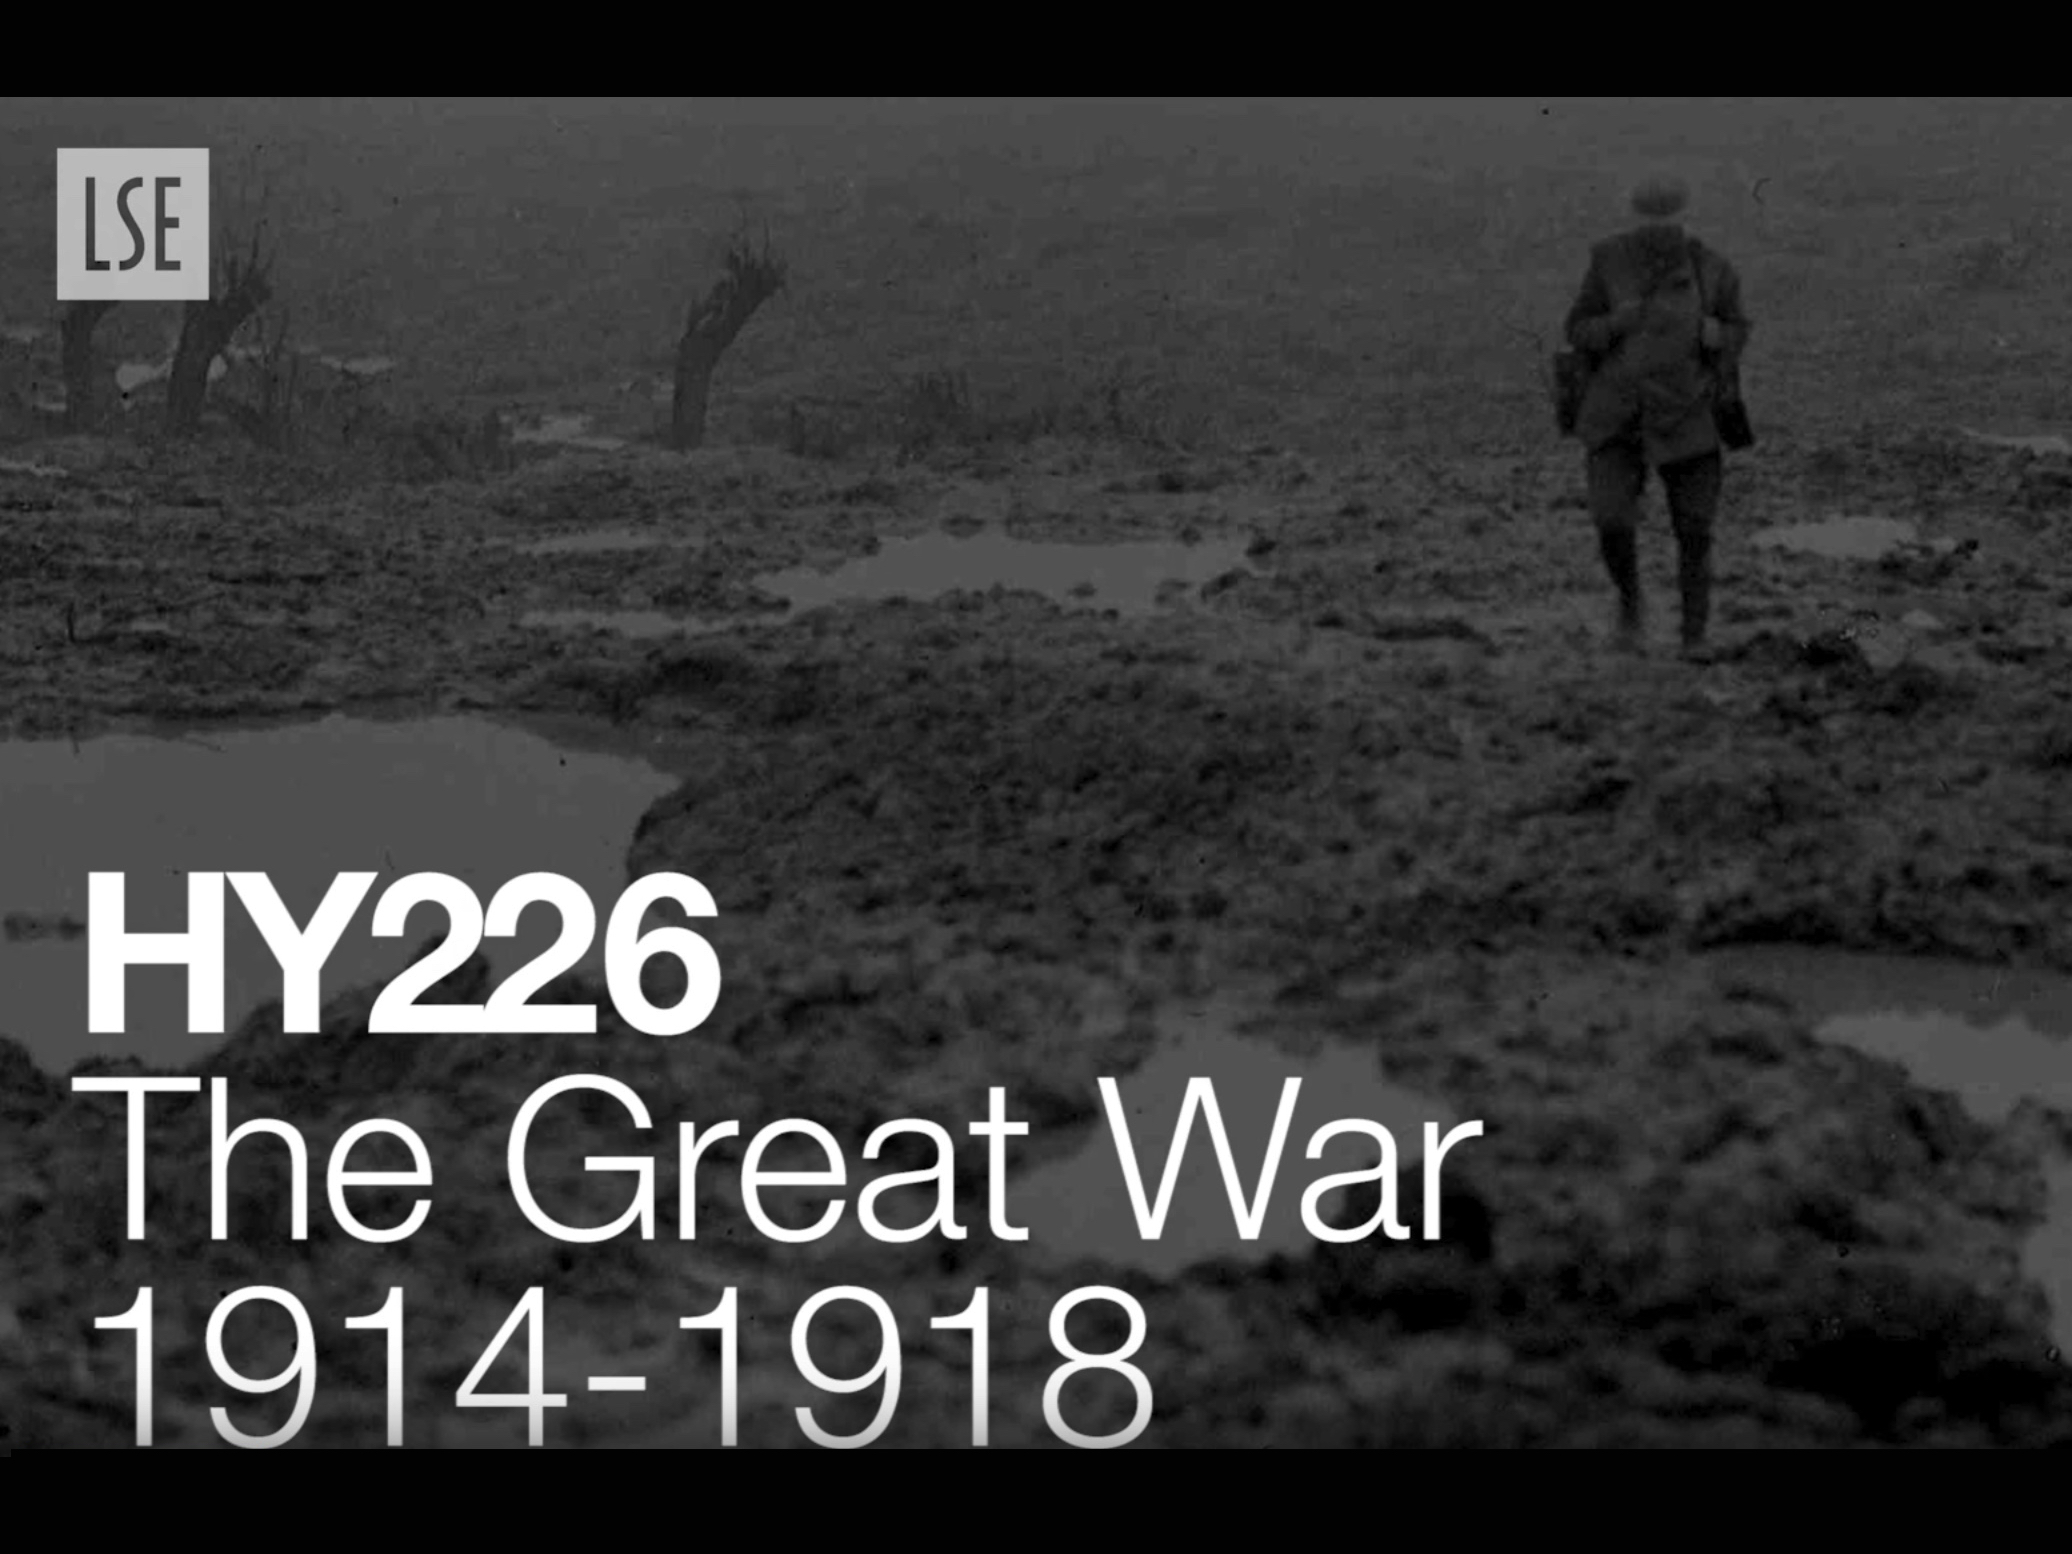 HY226: The Great War, 1914-1918